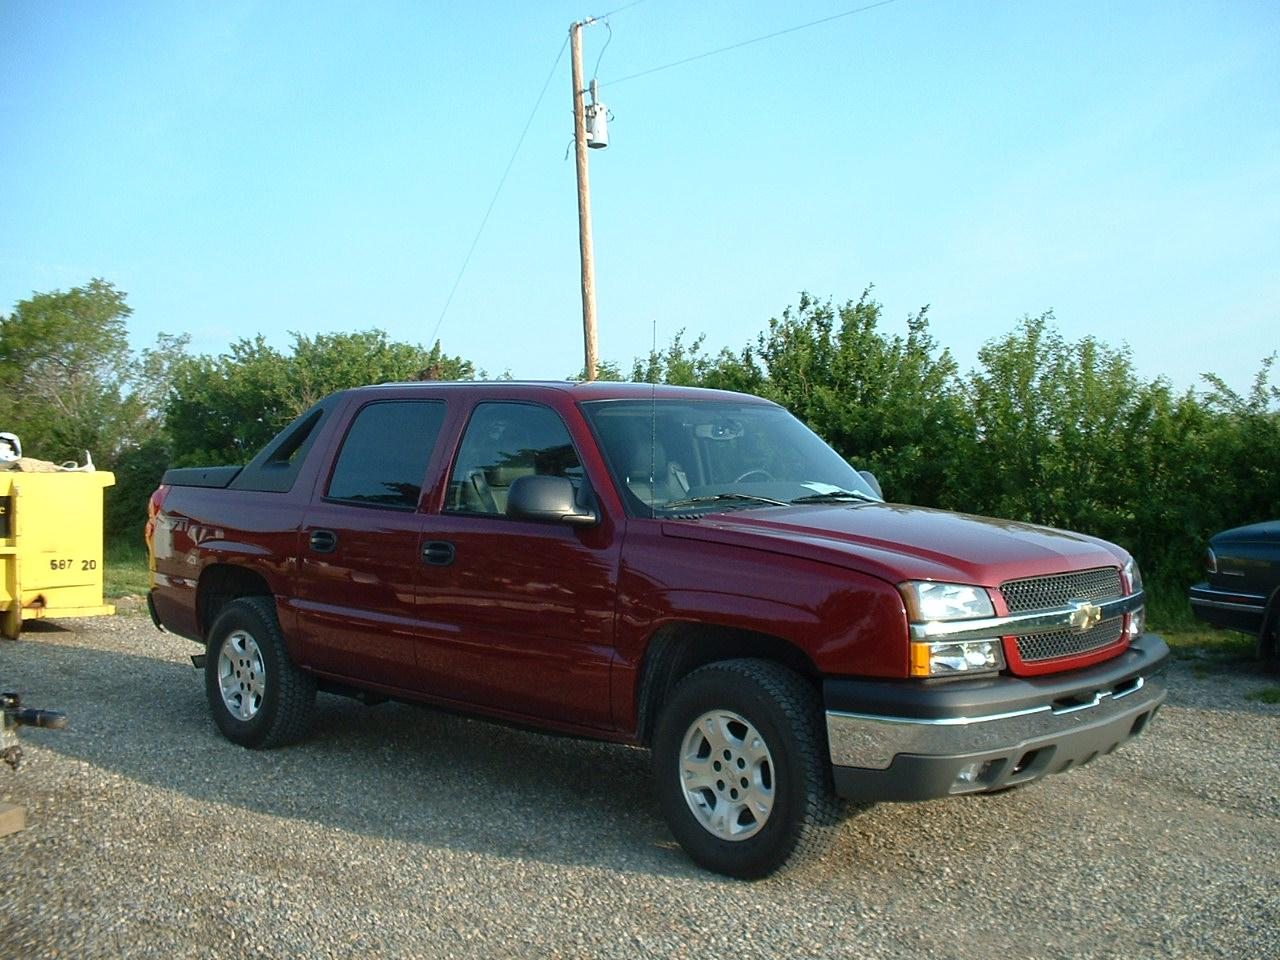 69MPcoronet 2004 Chevrolet Avalanche Specs Photos Modification